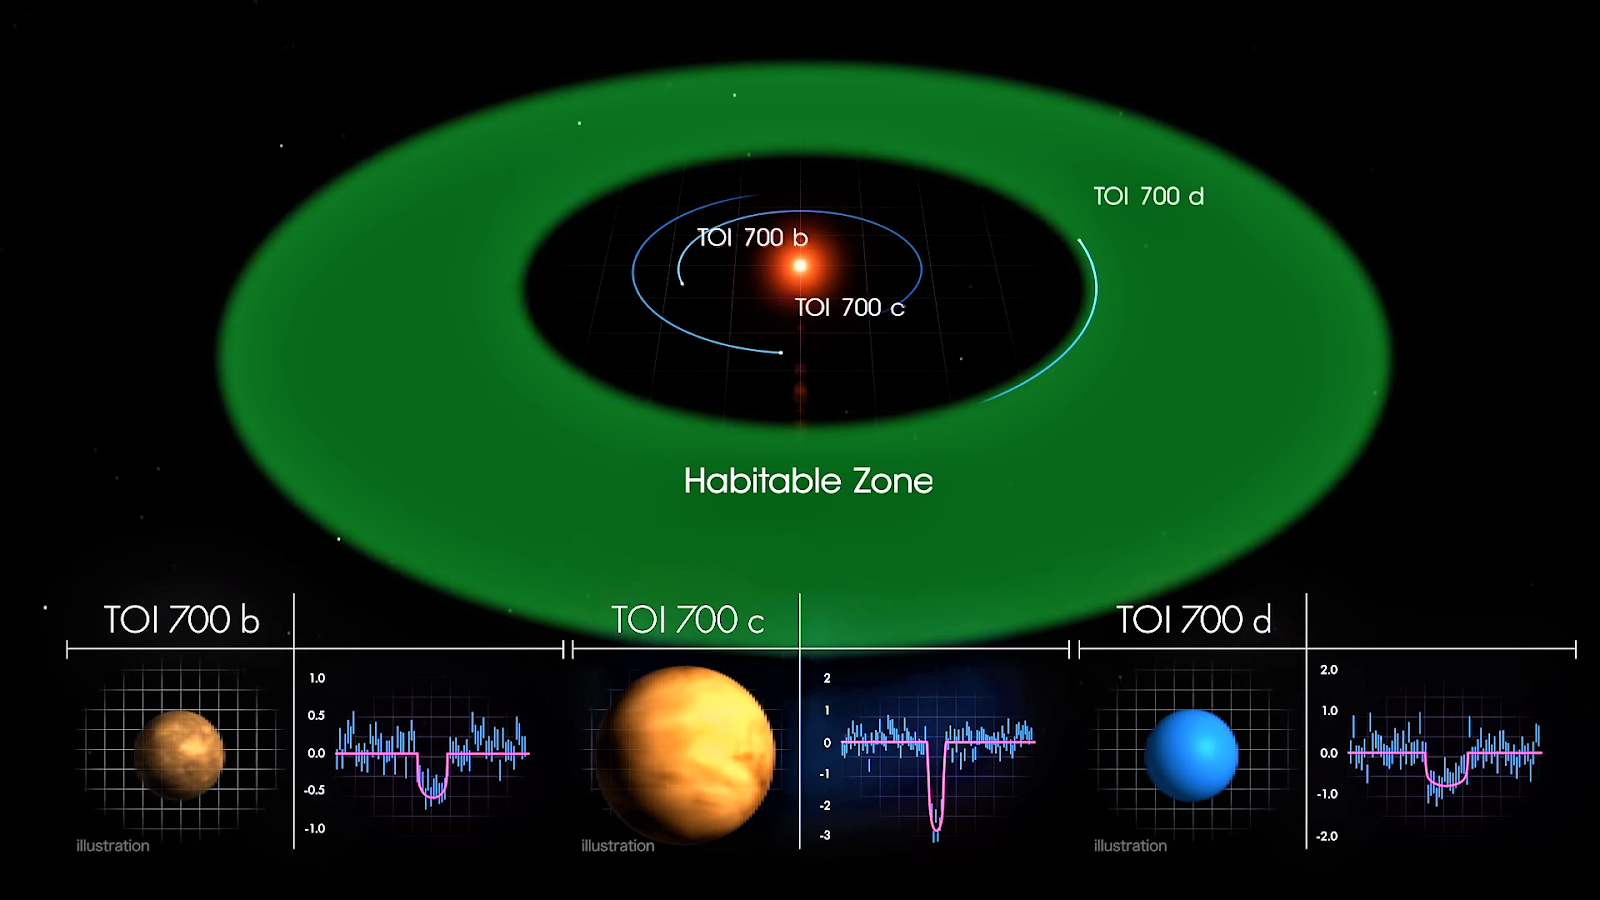 TOI 700 d is within the star's habitable zone.